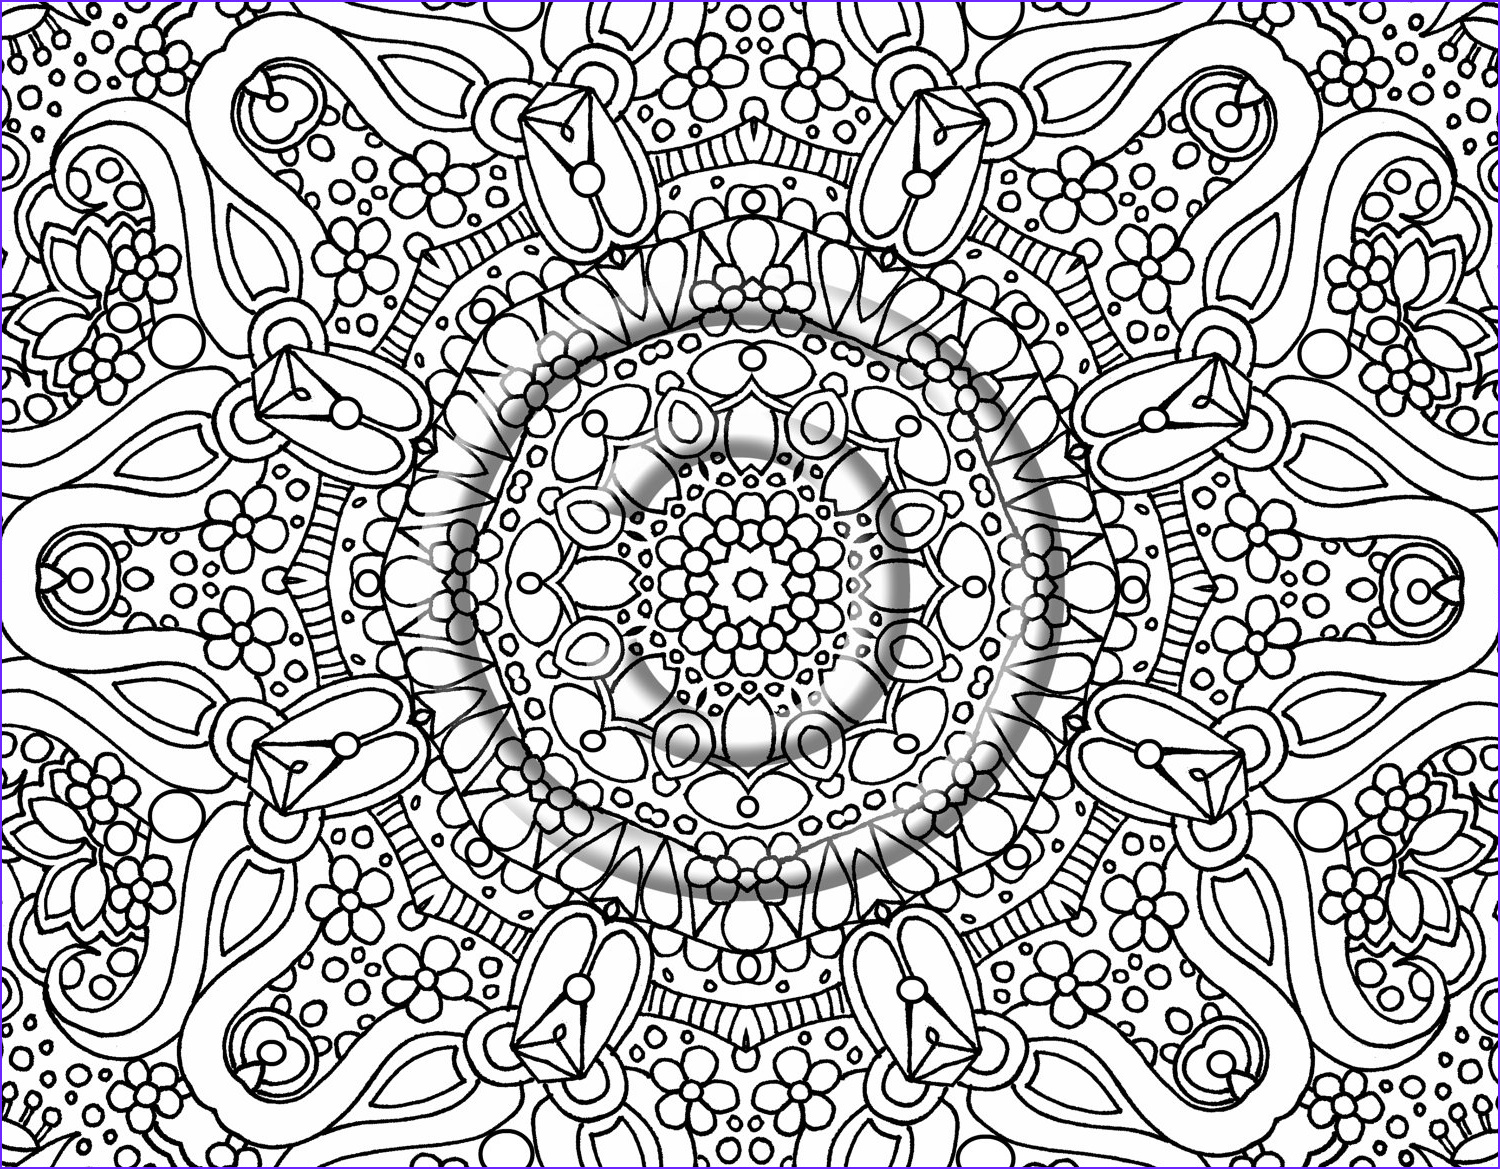 Printables Coloring Pages Awesome Photos Free Printable Abstract Coloring Pages for Adults